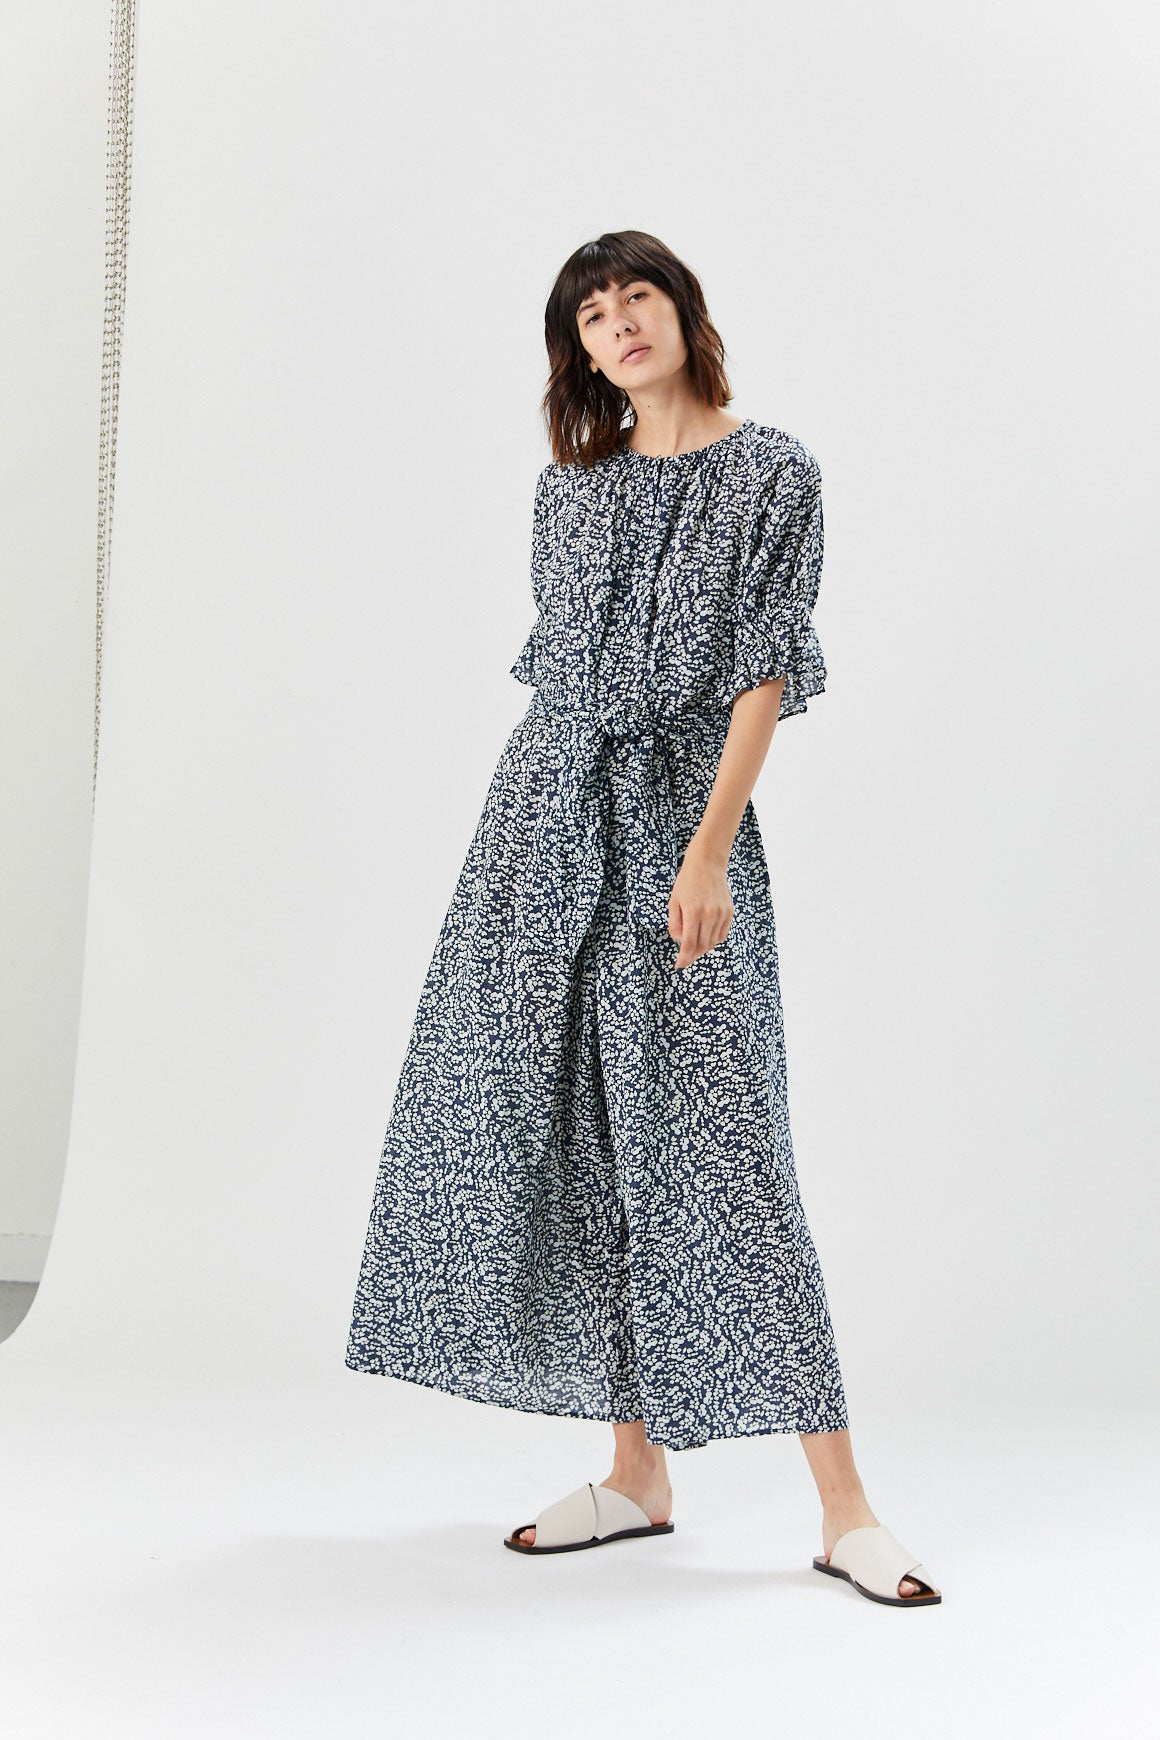 Apiece Apart - Ninos Jumpsuit, Navy Dot